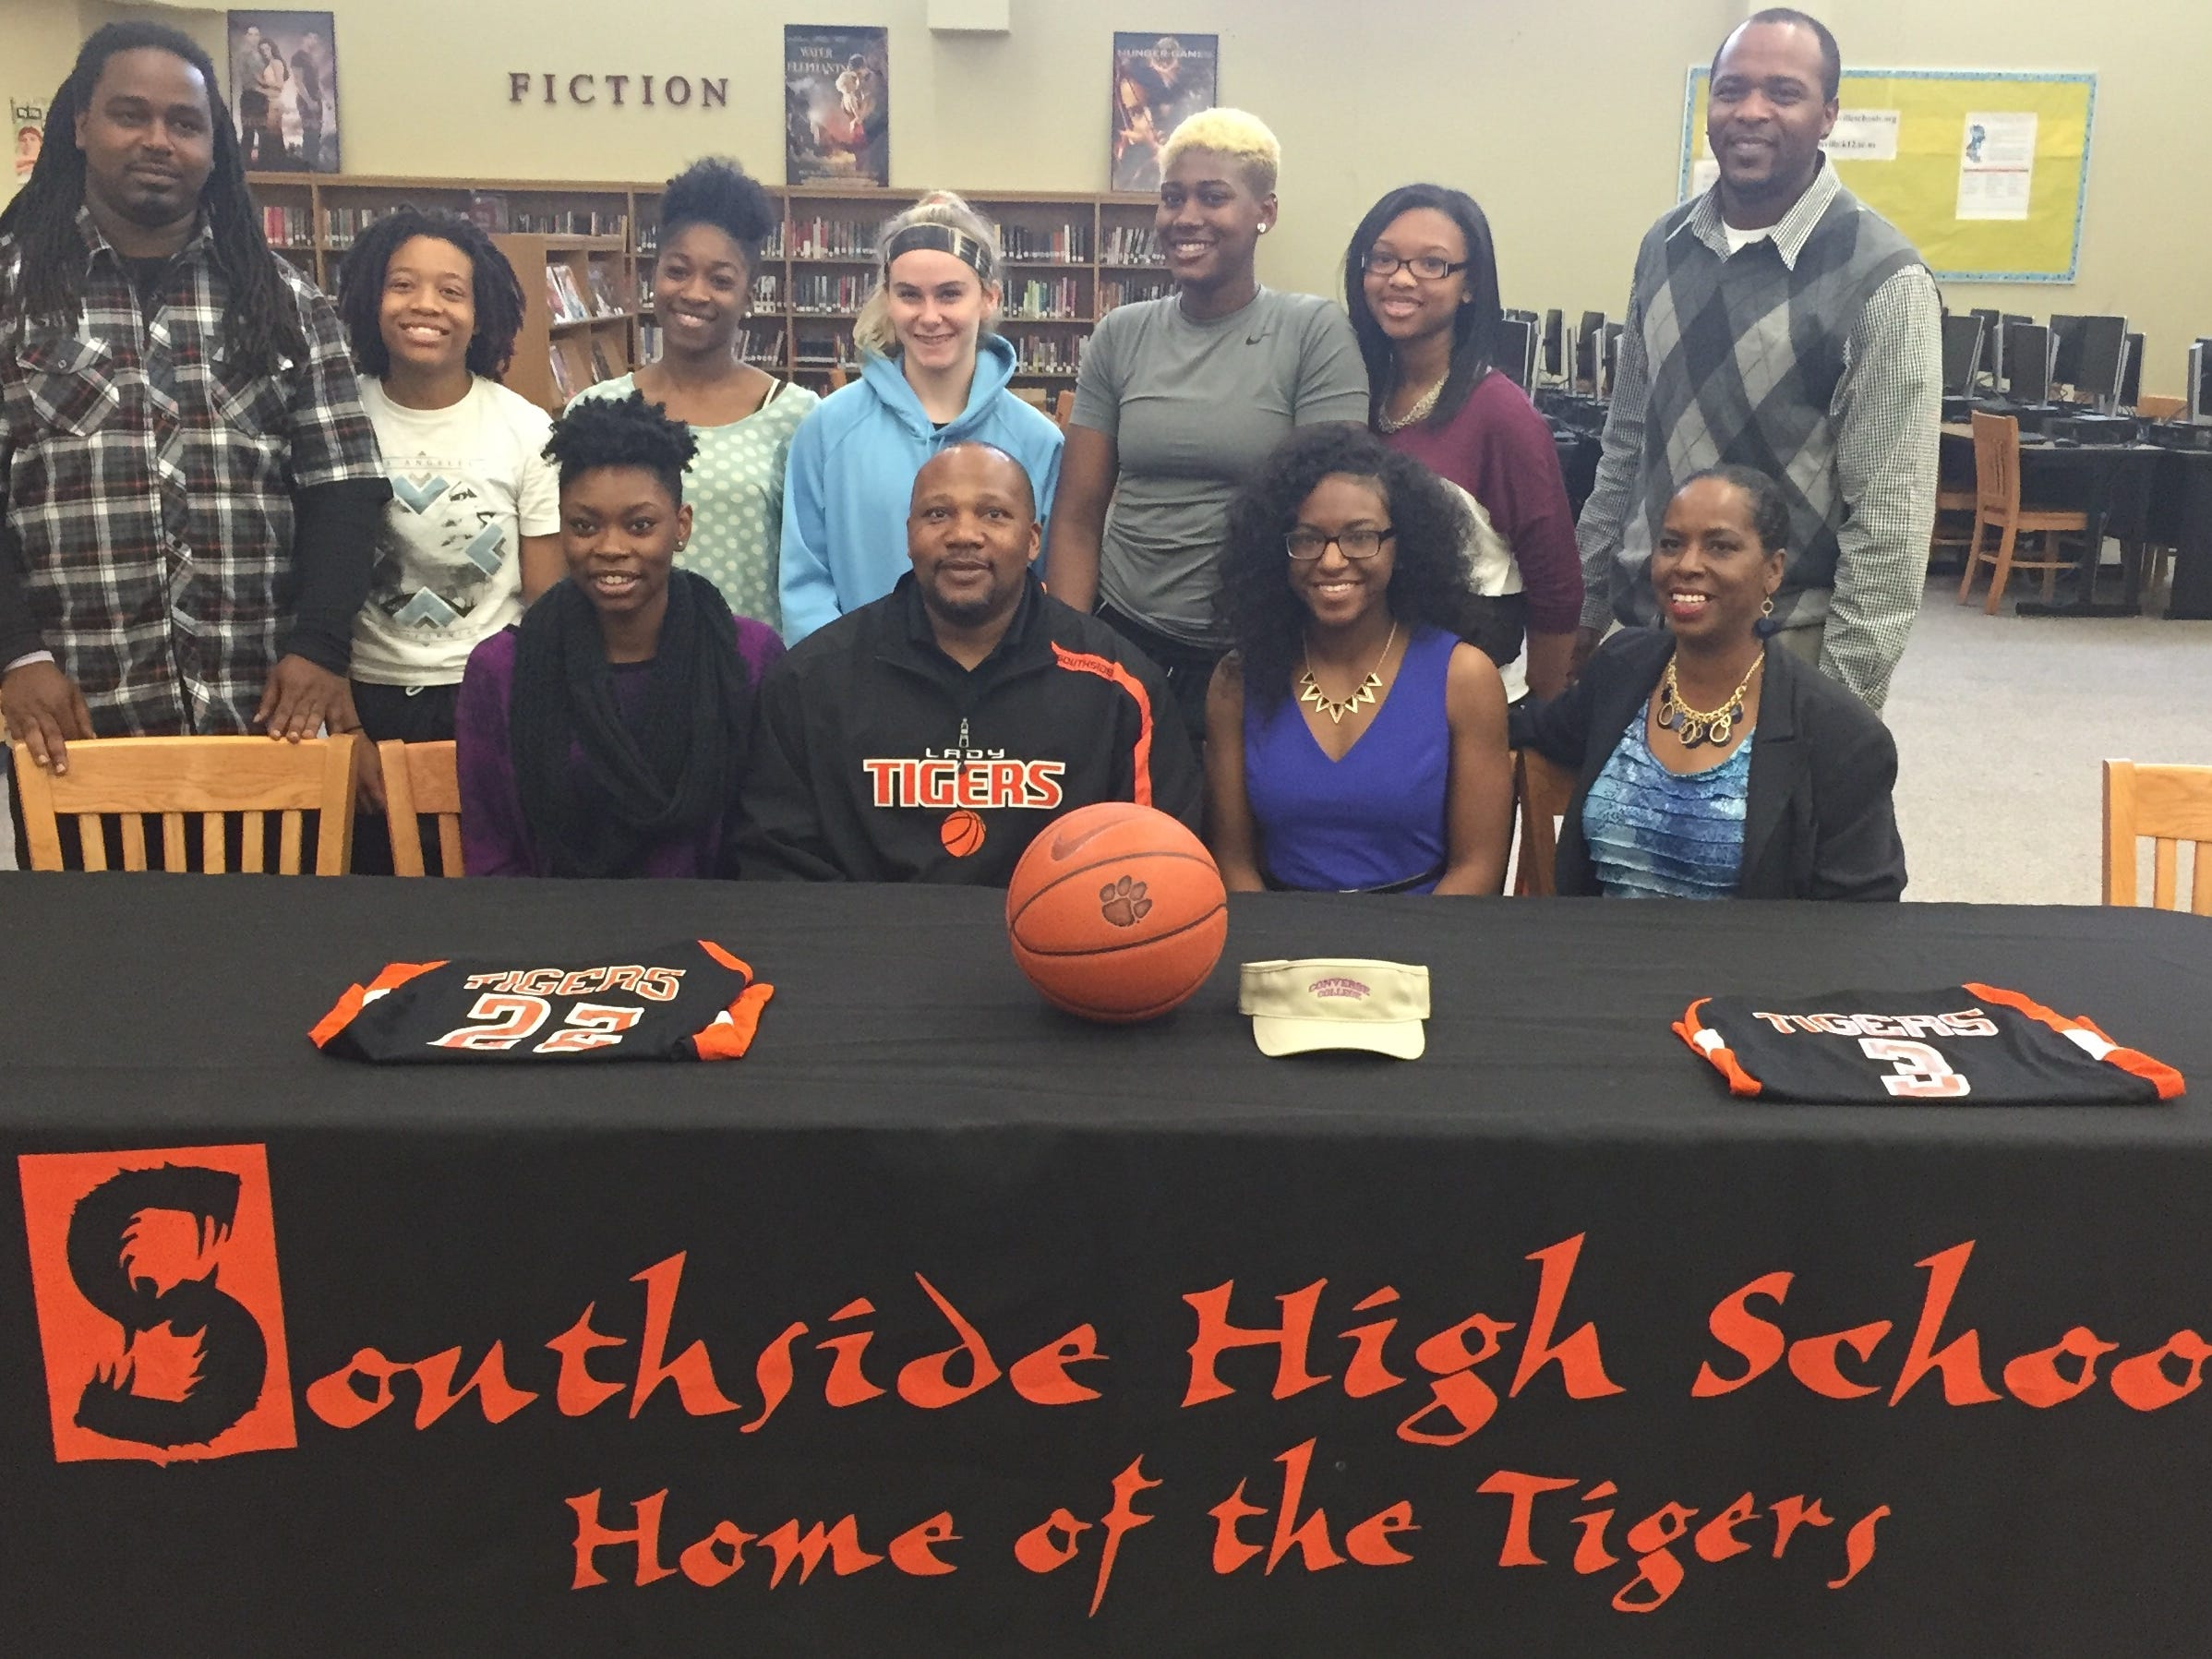 Southside High School seniors Khrystal Ellis, front left, and Paige Johnson, front second from right, signed to play basketball at Converse College.